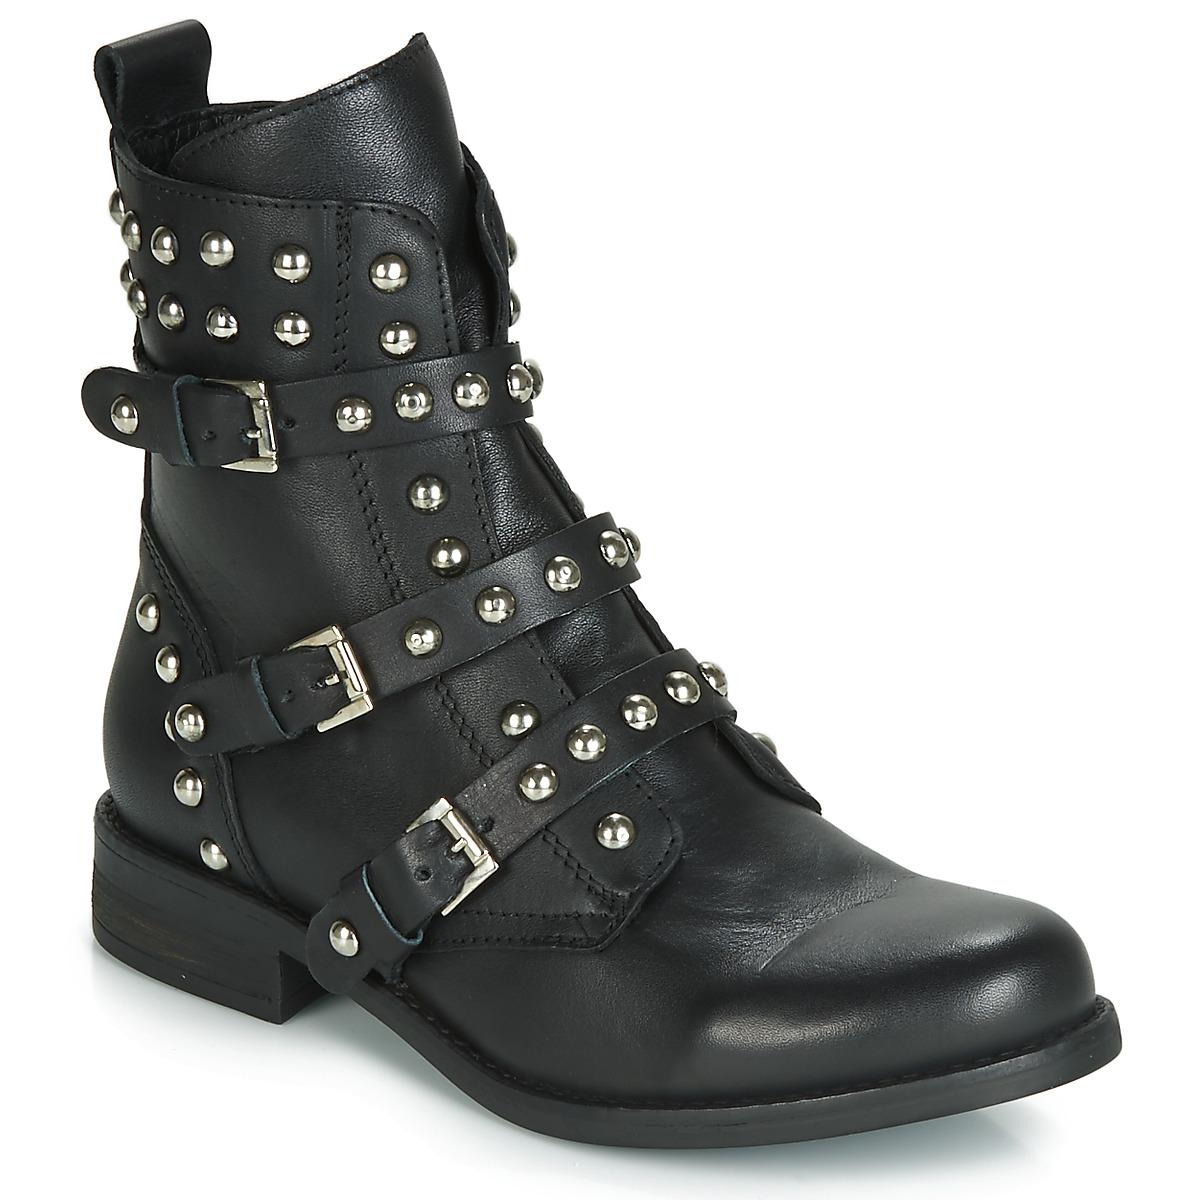 c69b317cada Steve Madden Spunky Low Ankle Boots in Black - Lyst